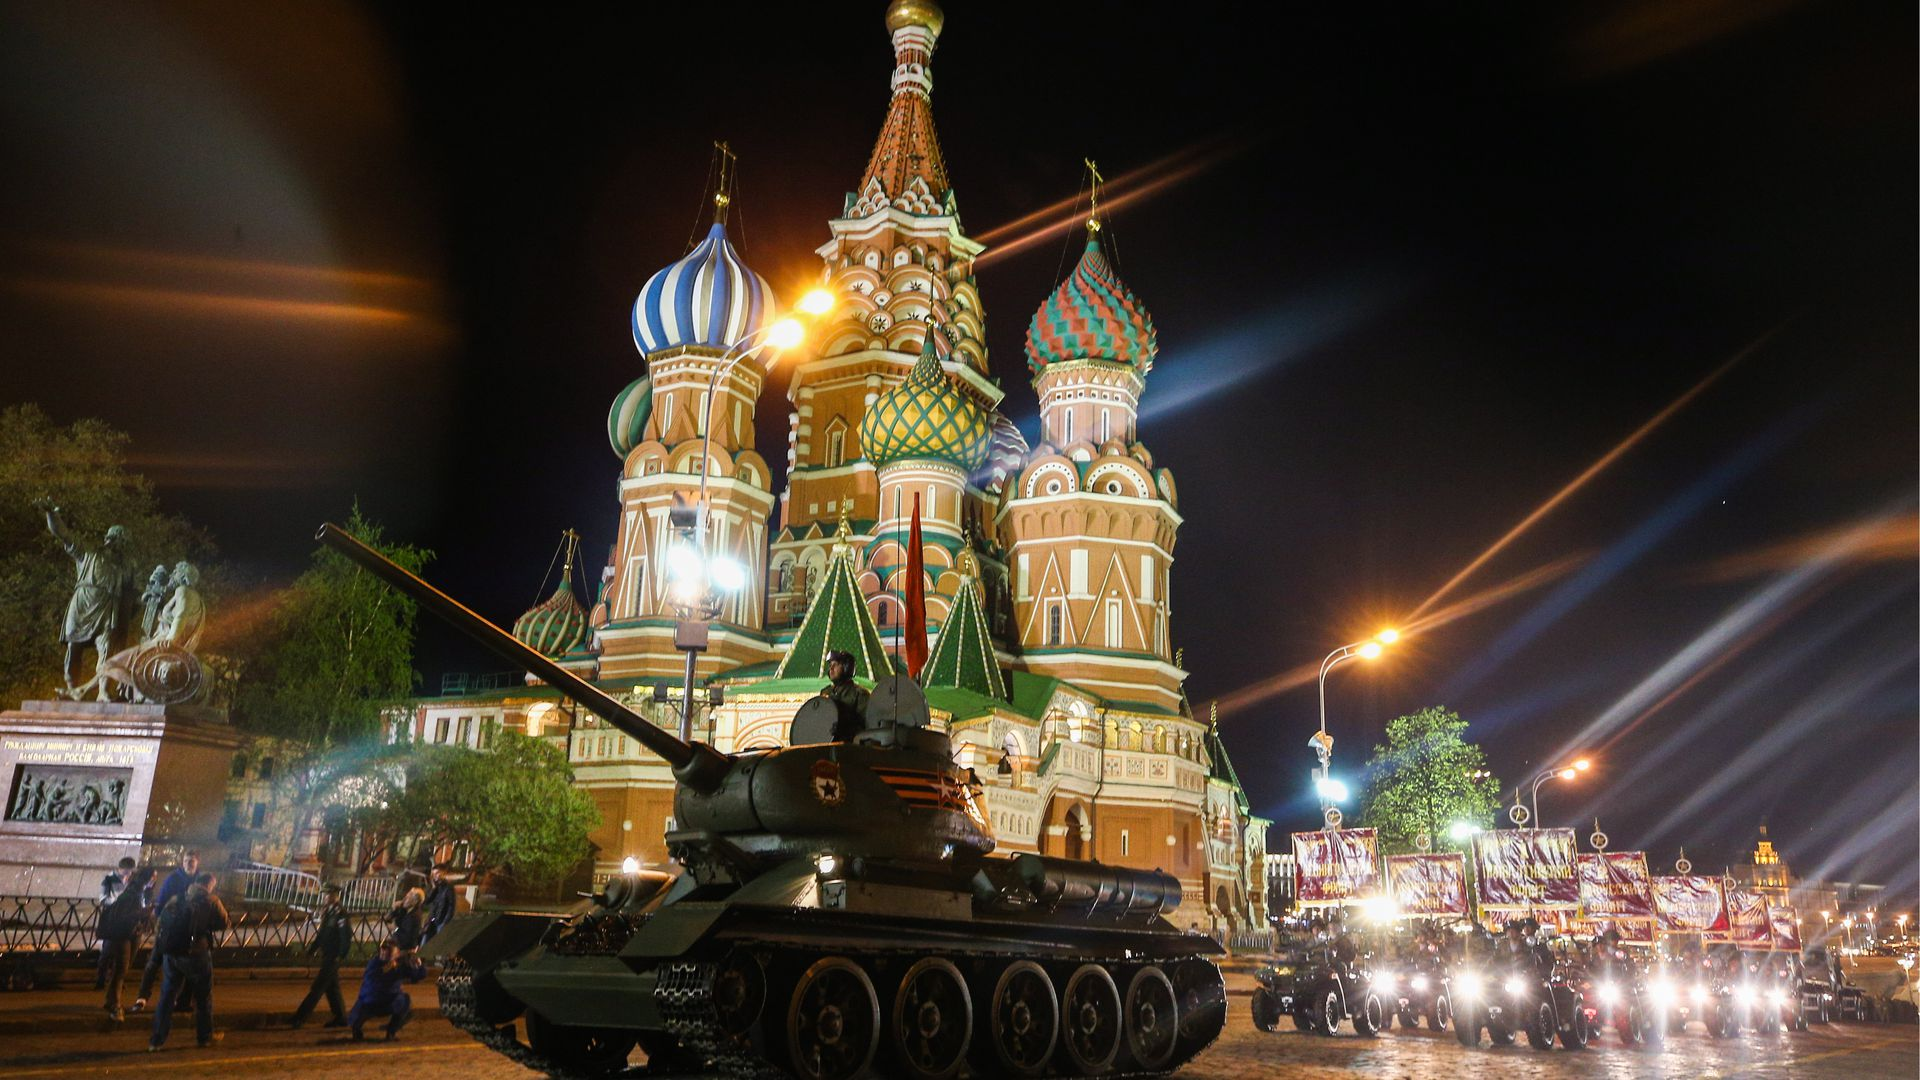 Tank in front of the Kremlin